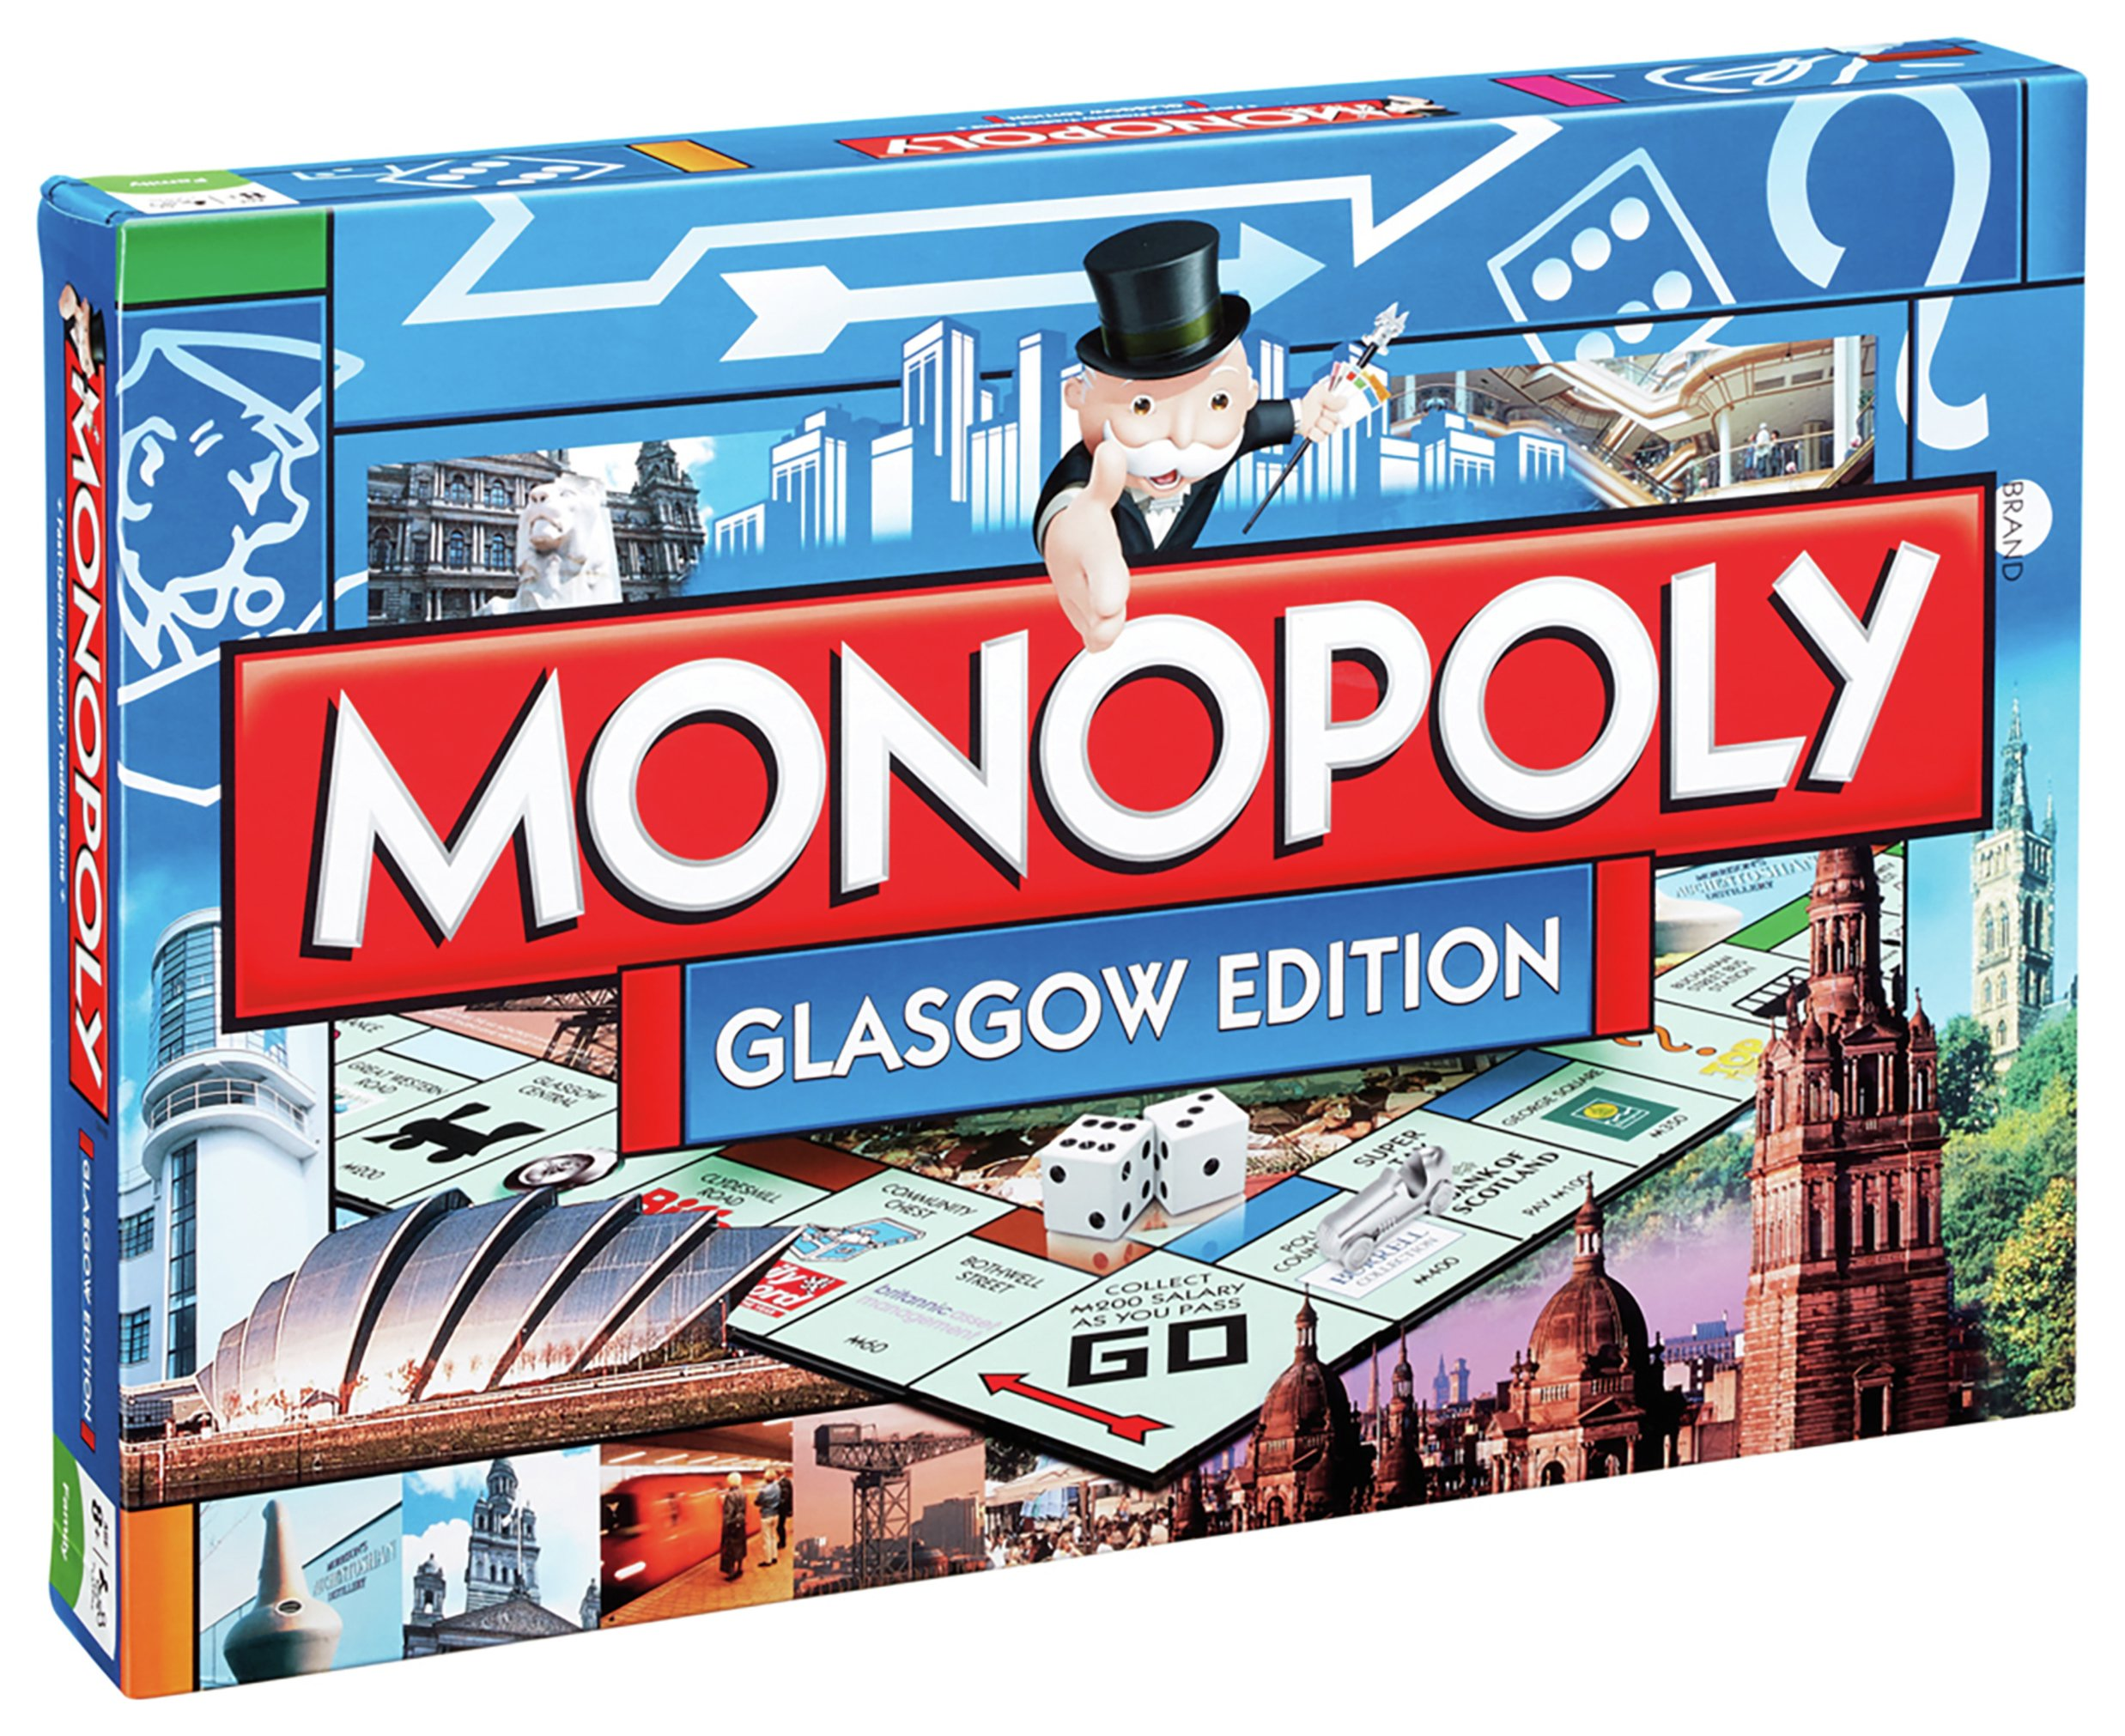 Glasgow Monopoly Board Game.